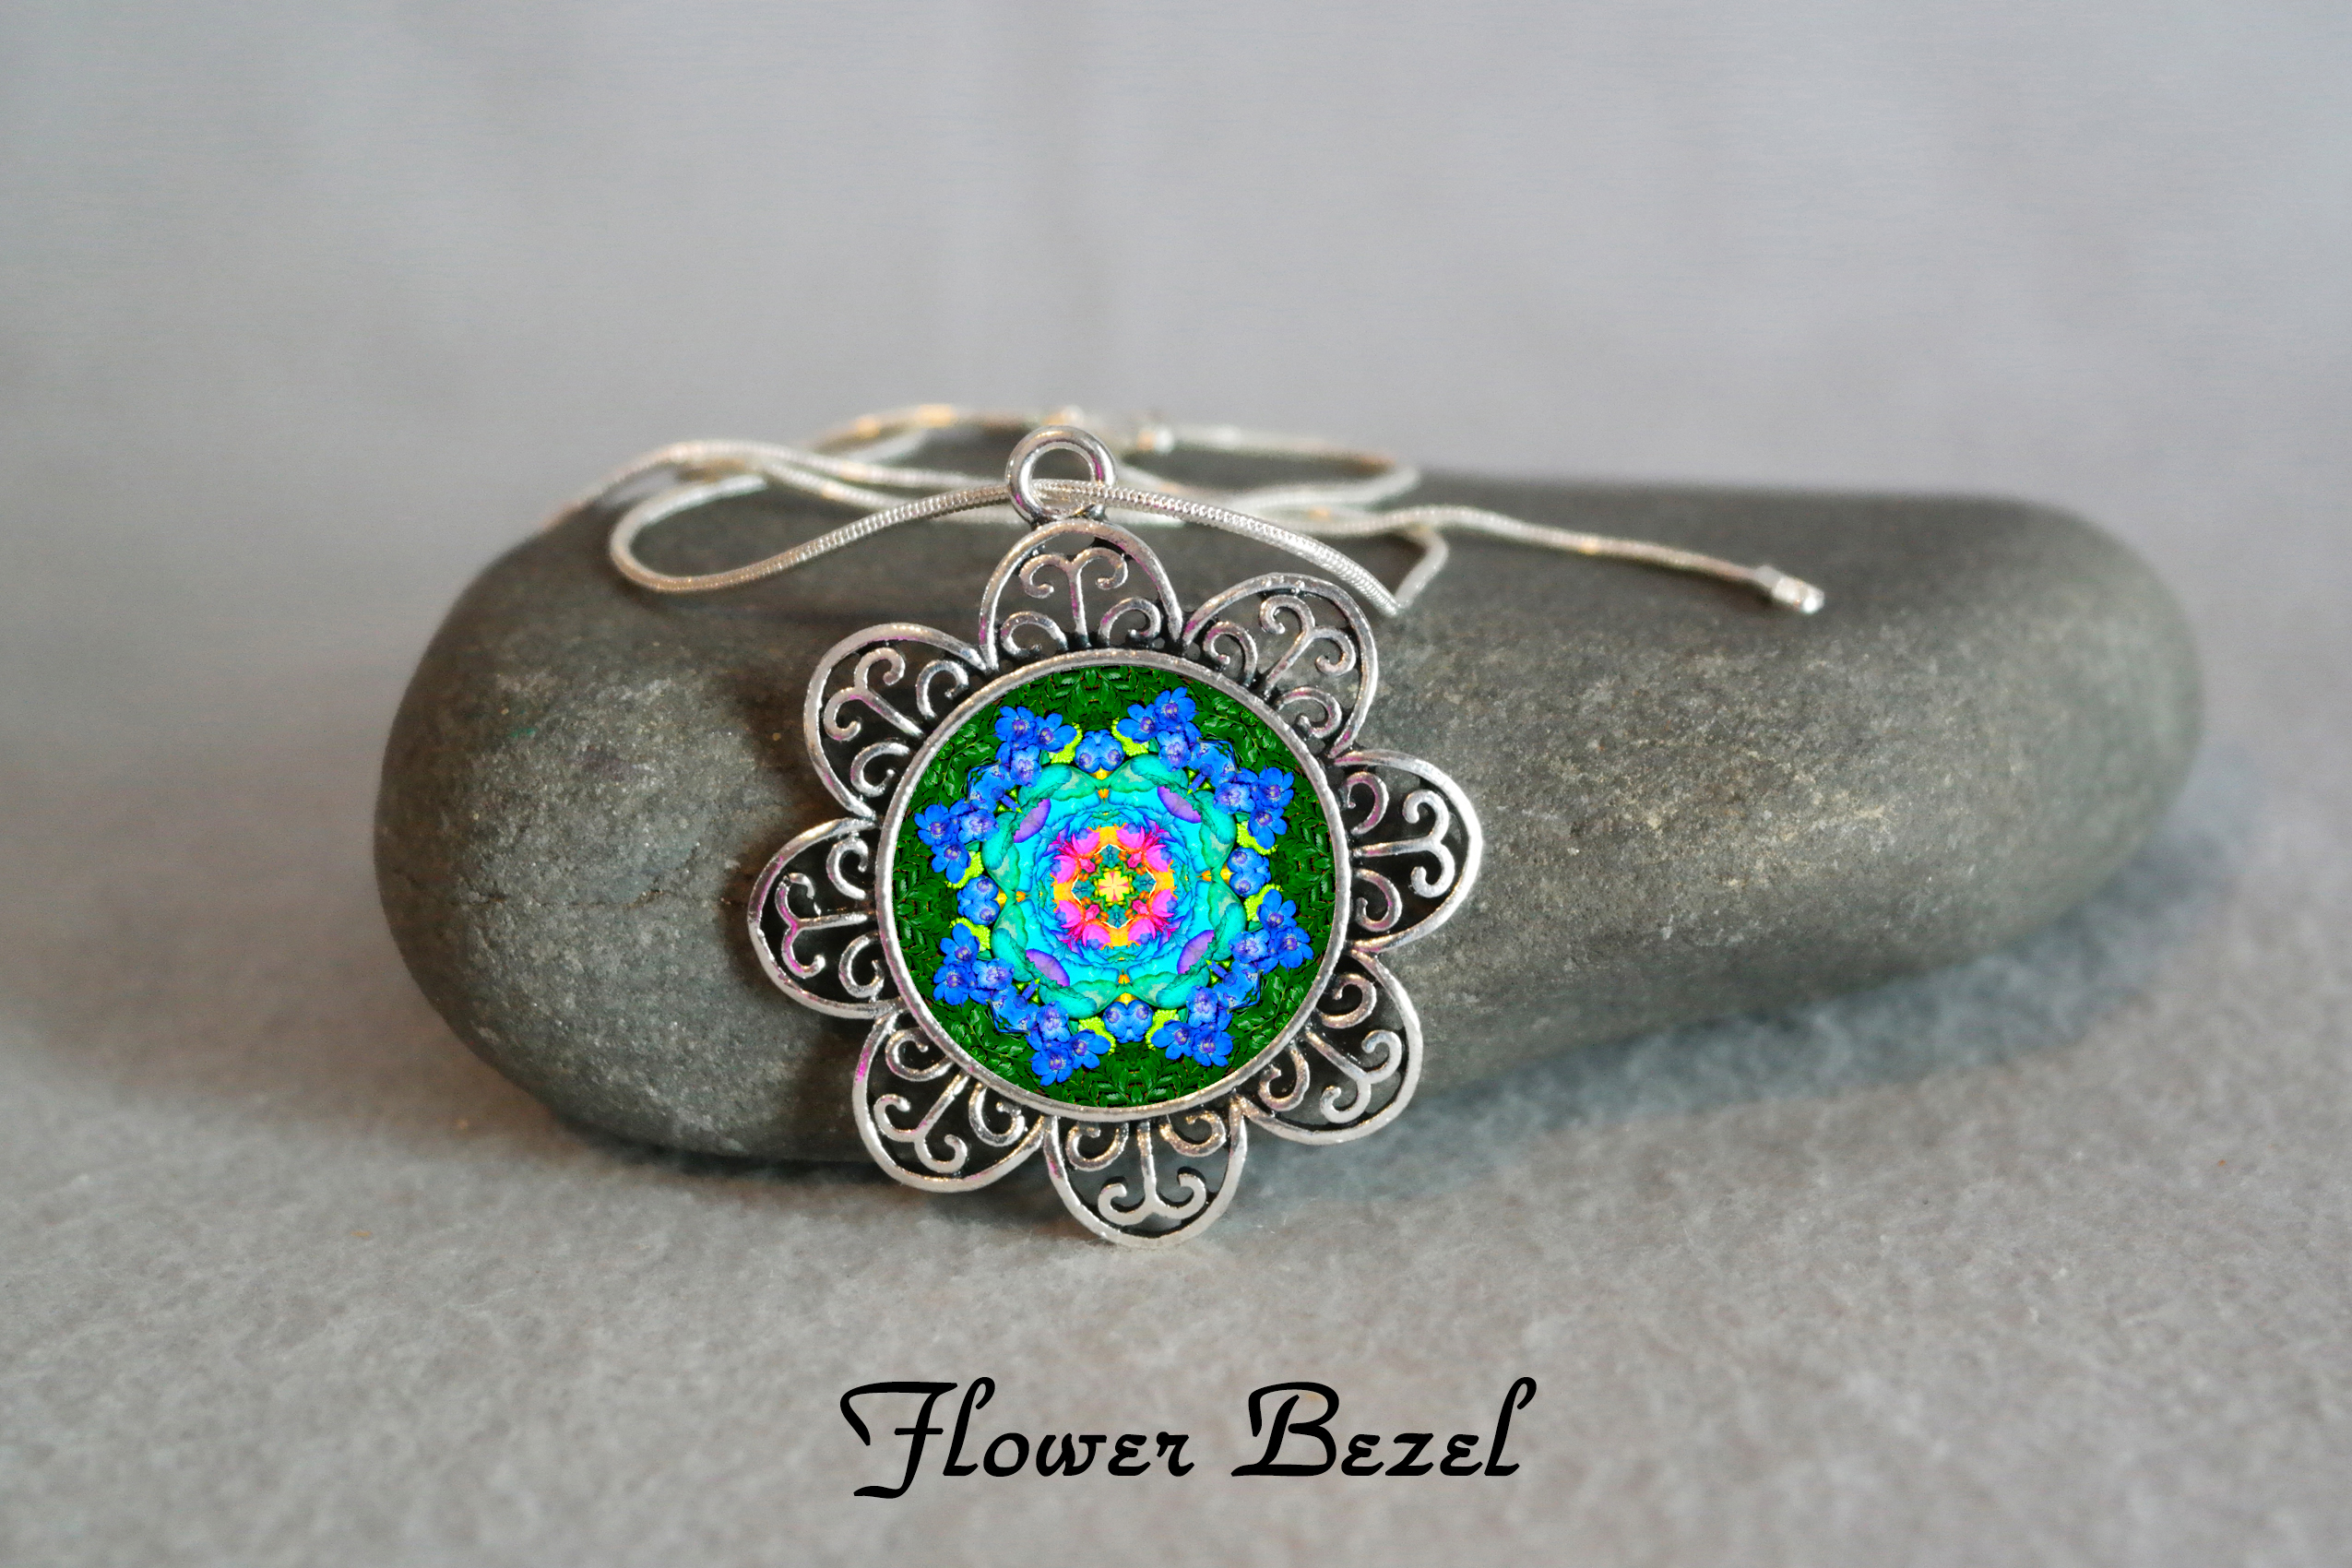 Flower Bezel pendants